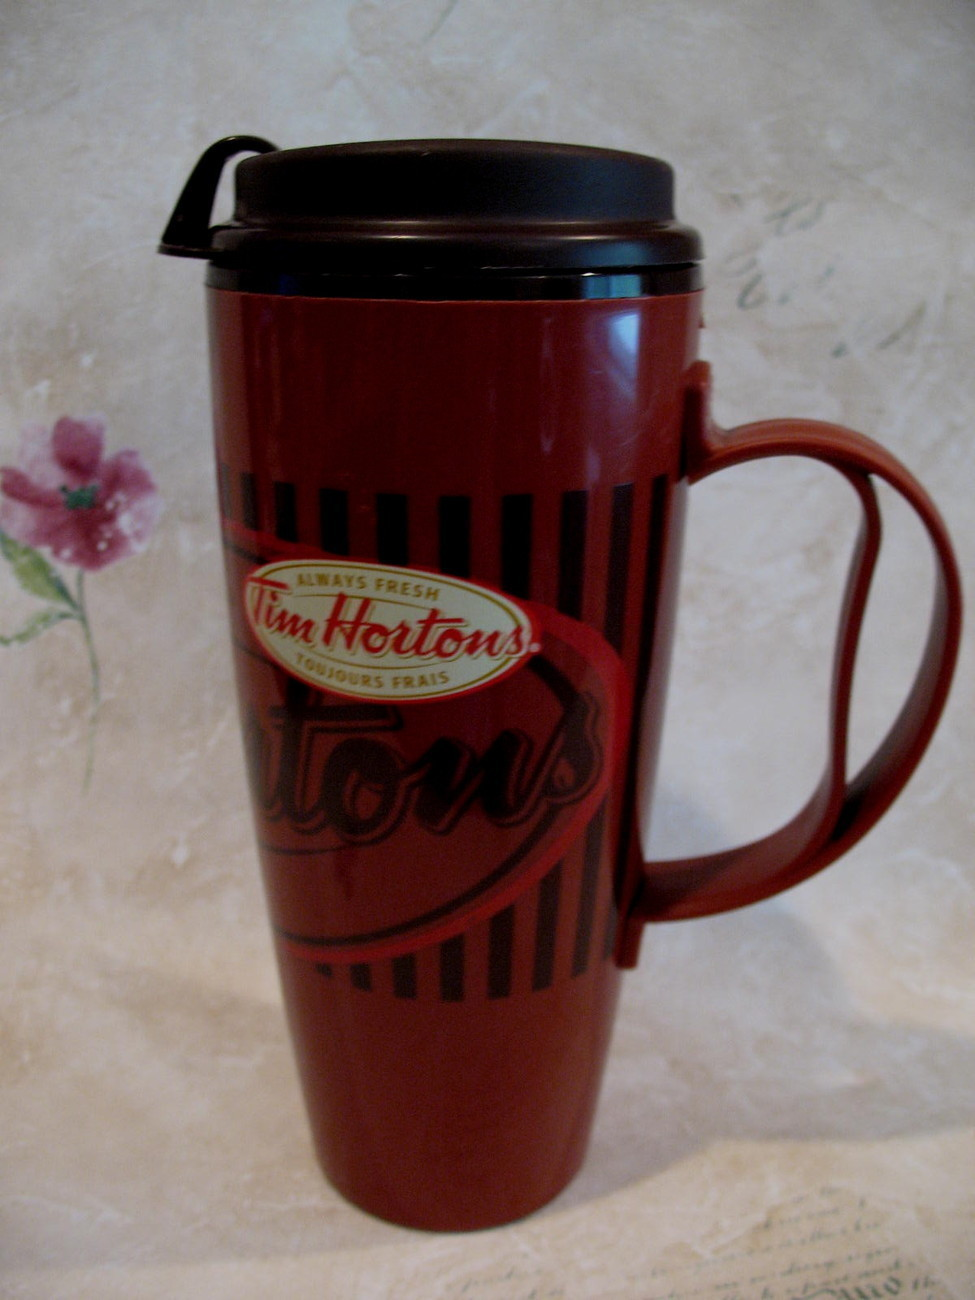 Tim Hortons Coffee Travel Cup Mug Always Fresh Souvenir